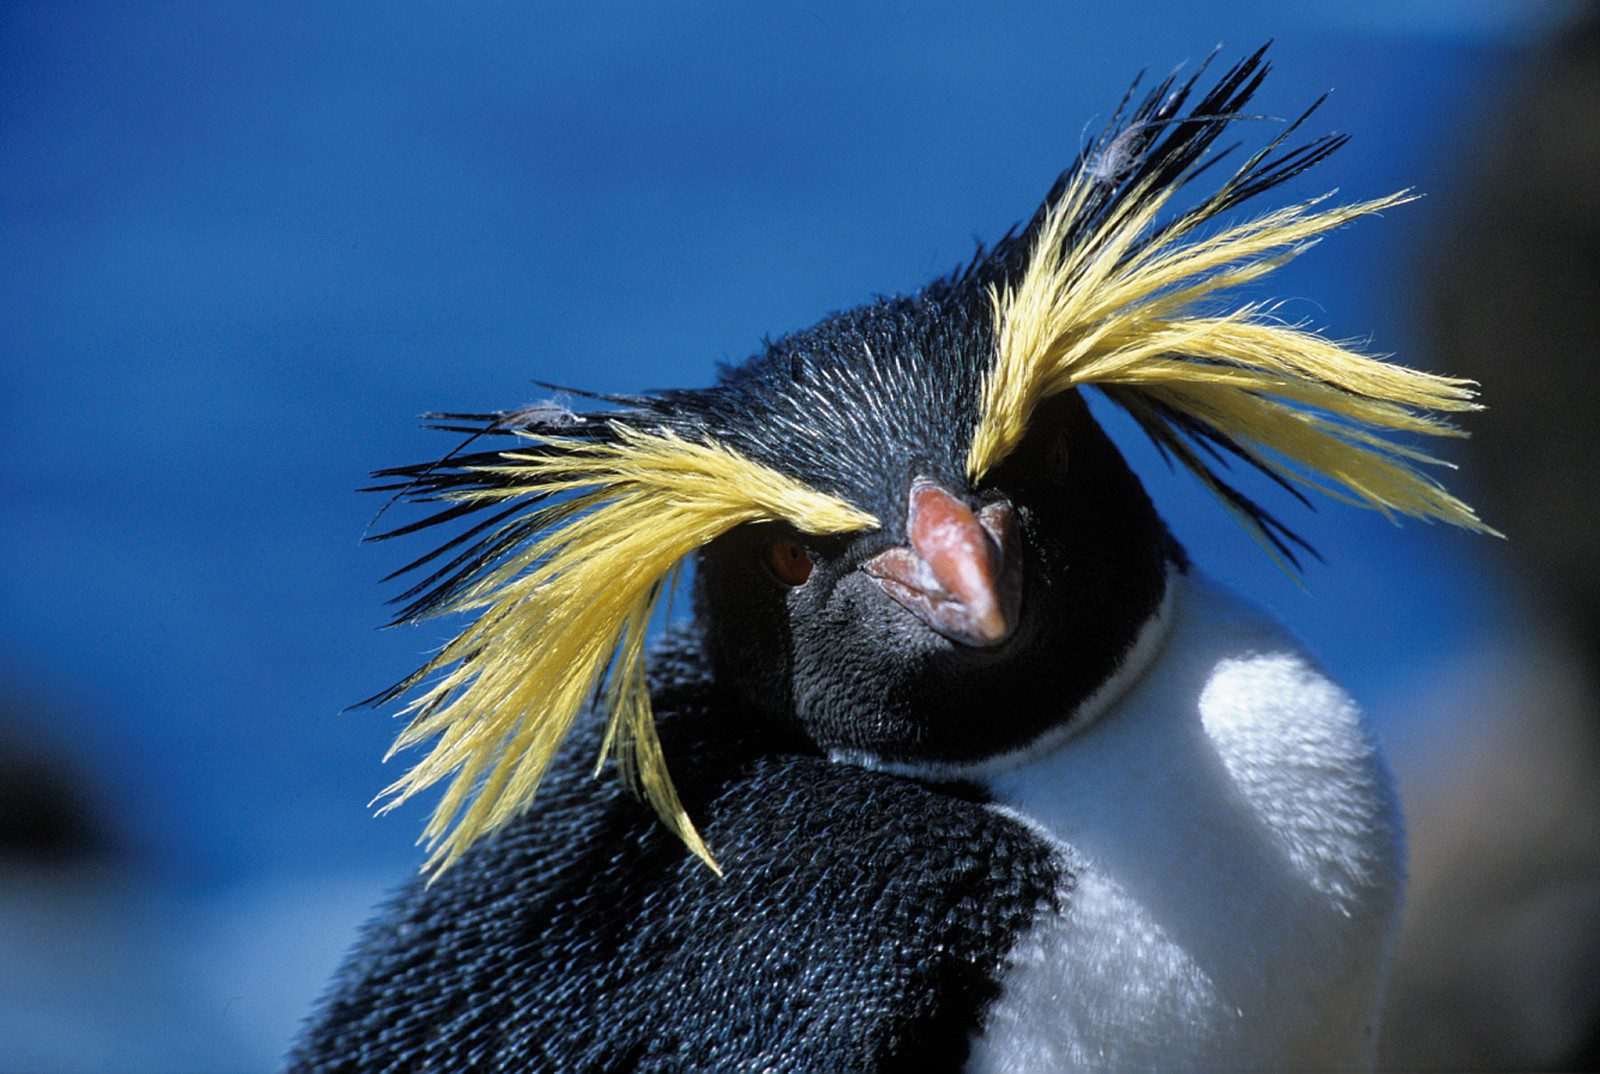 a curious Rockhopper penguin of the Falkland Islands with long yellow feathers comically splayed from its eyes